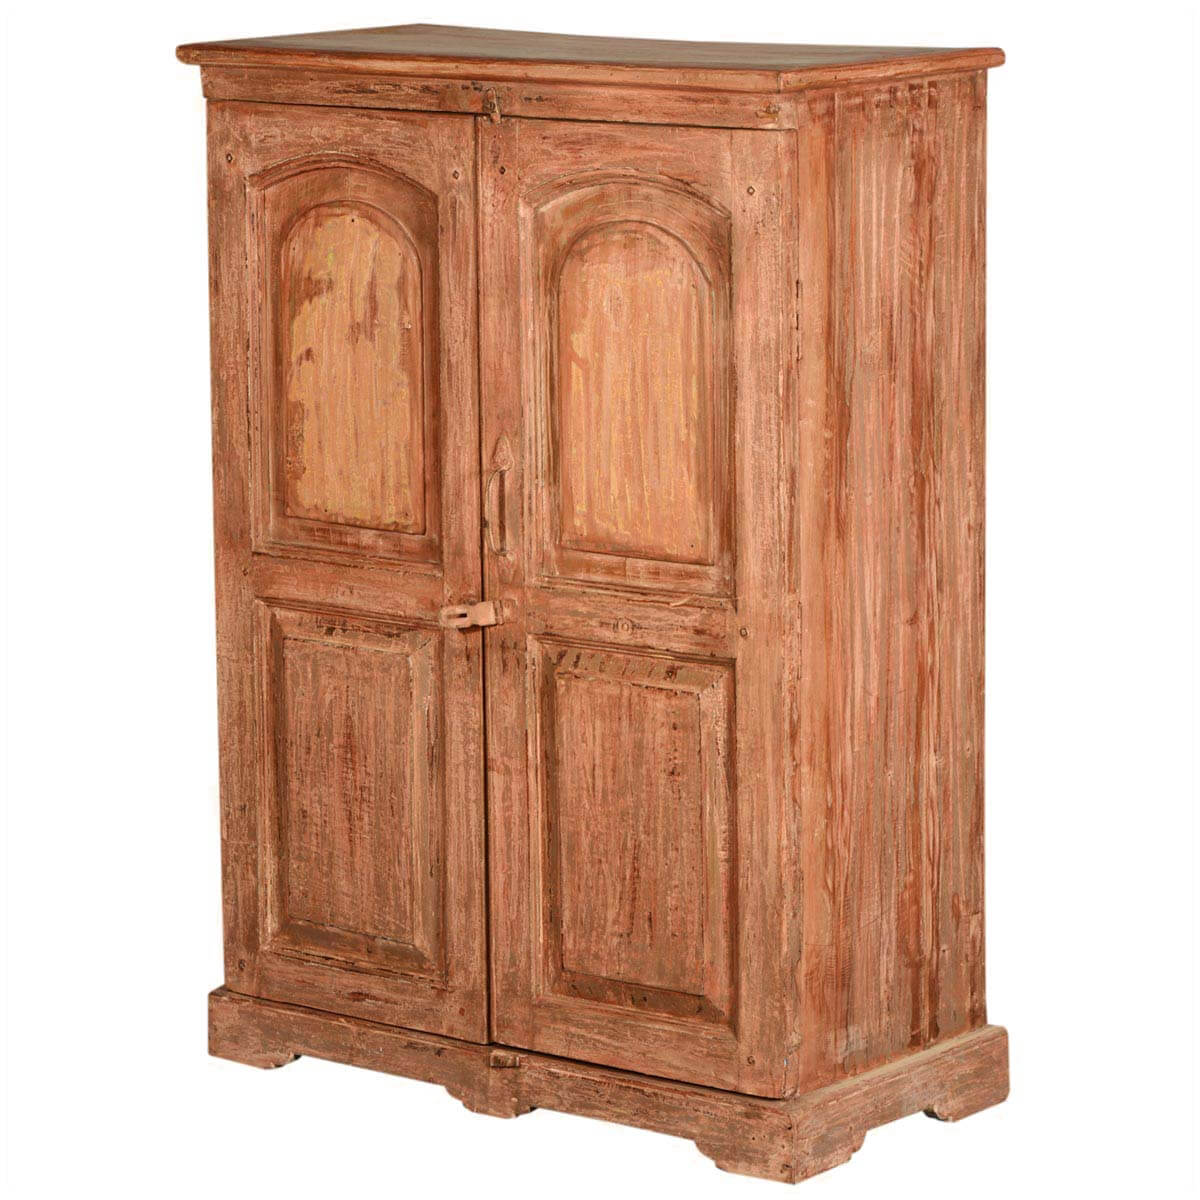 new orleans rustic reclaimed wood storage cabinet armoire. Black Bedroom Furniture Sets. Home Design Ideas